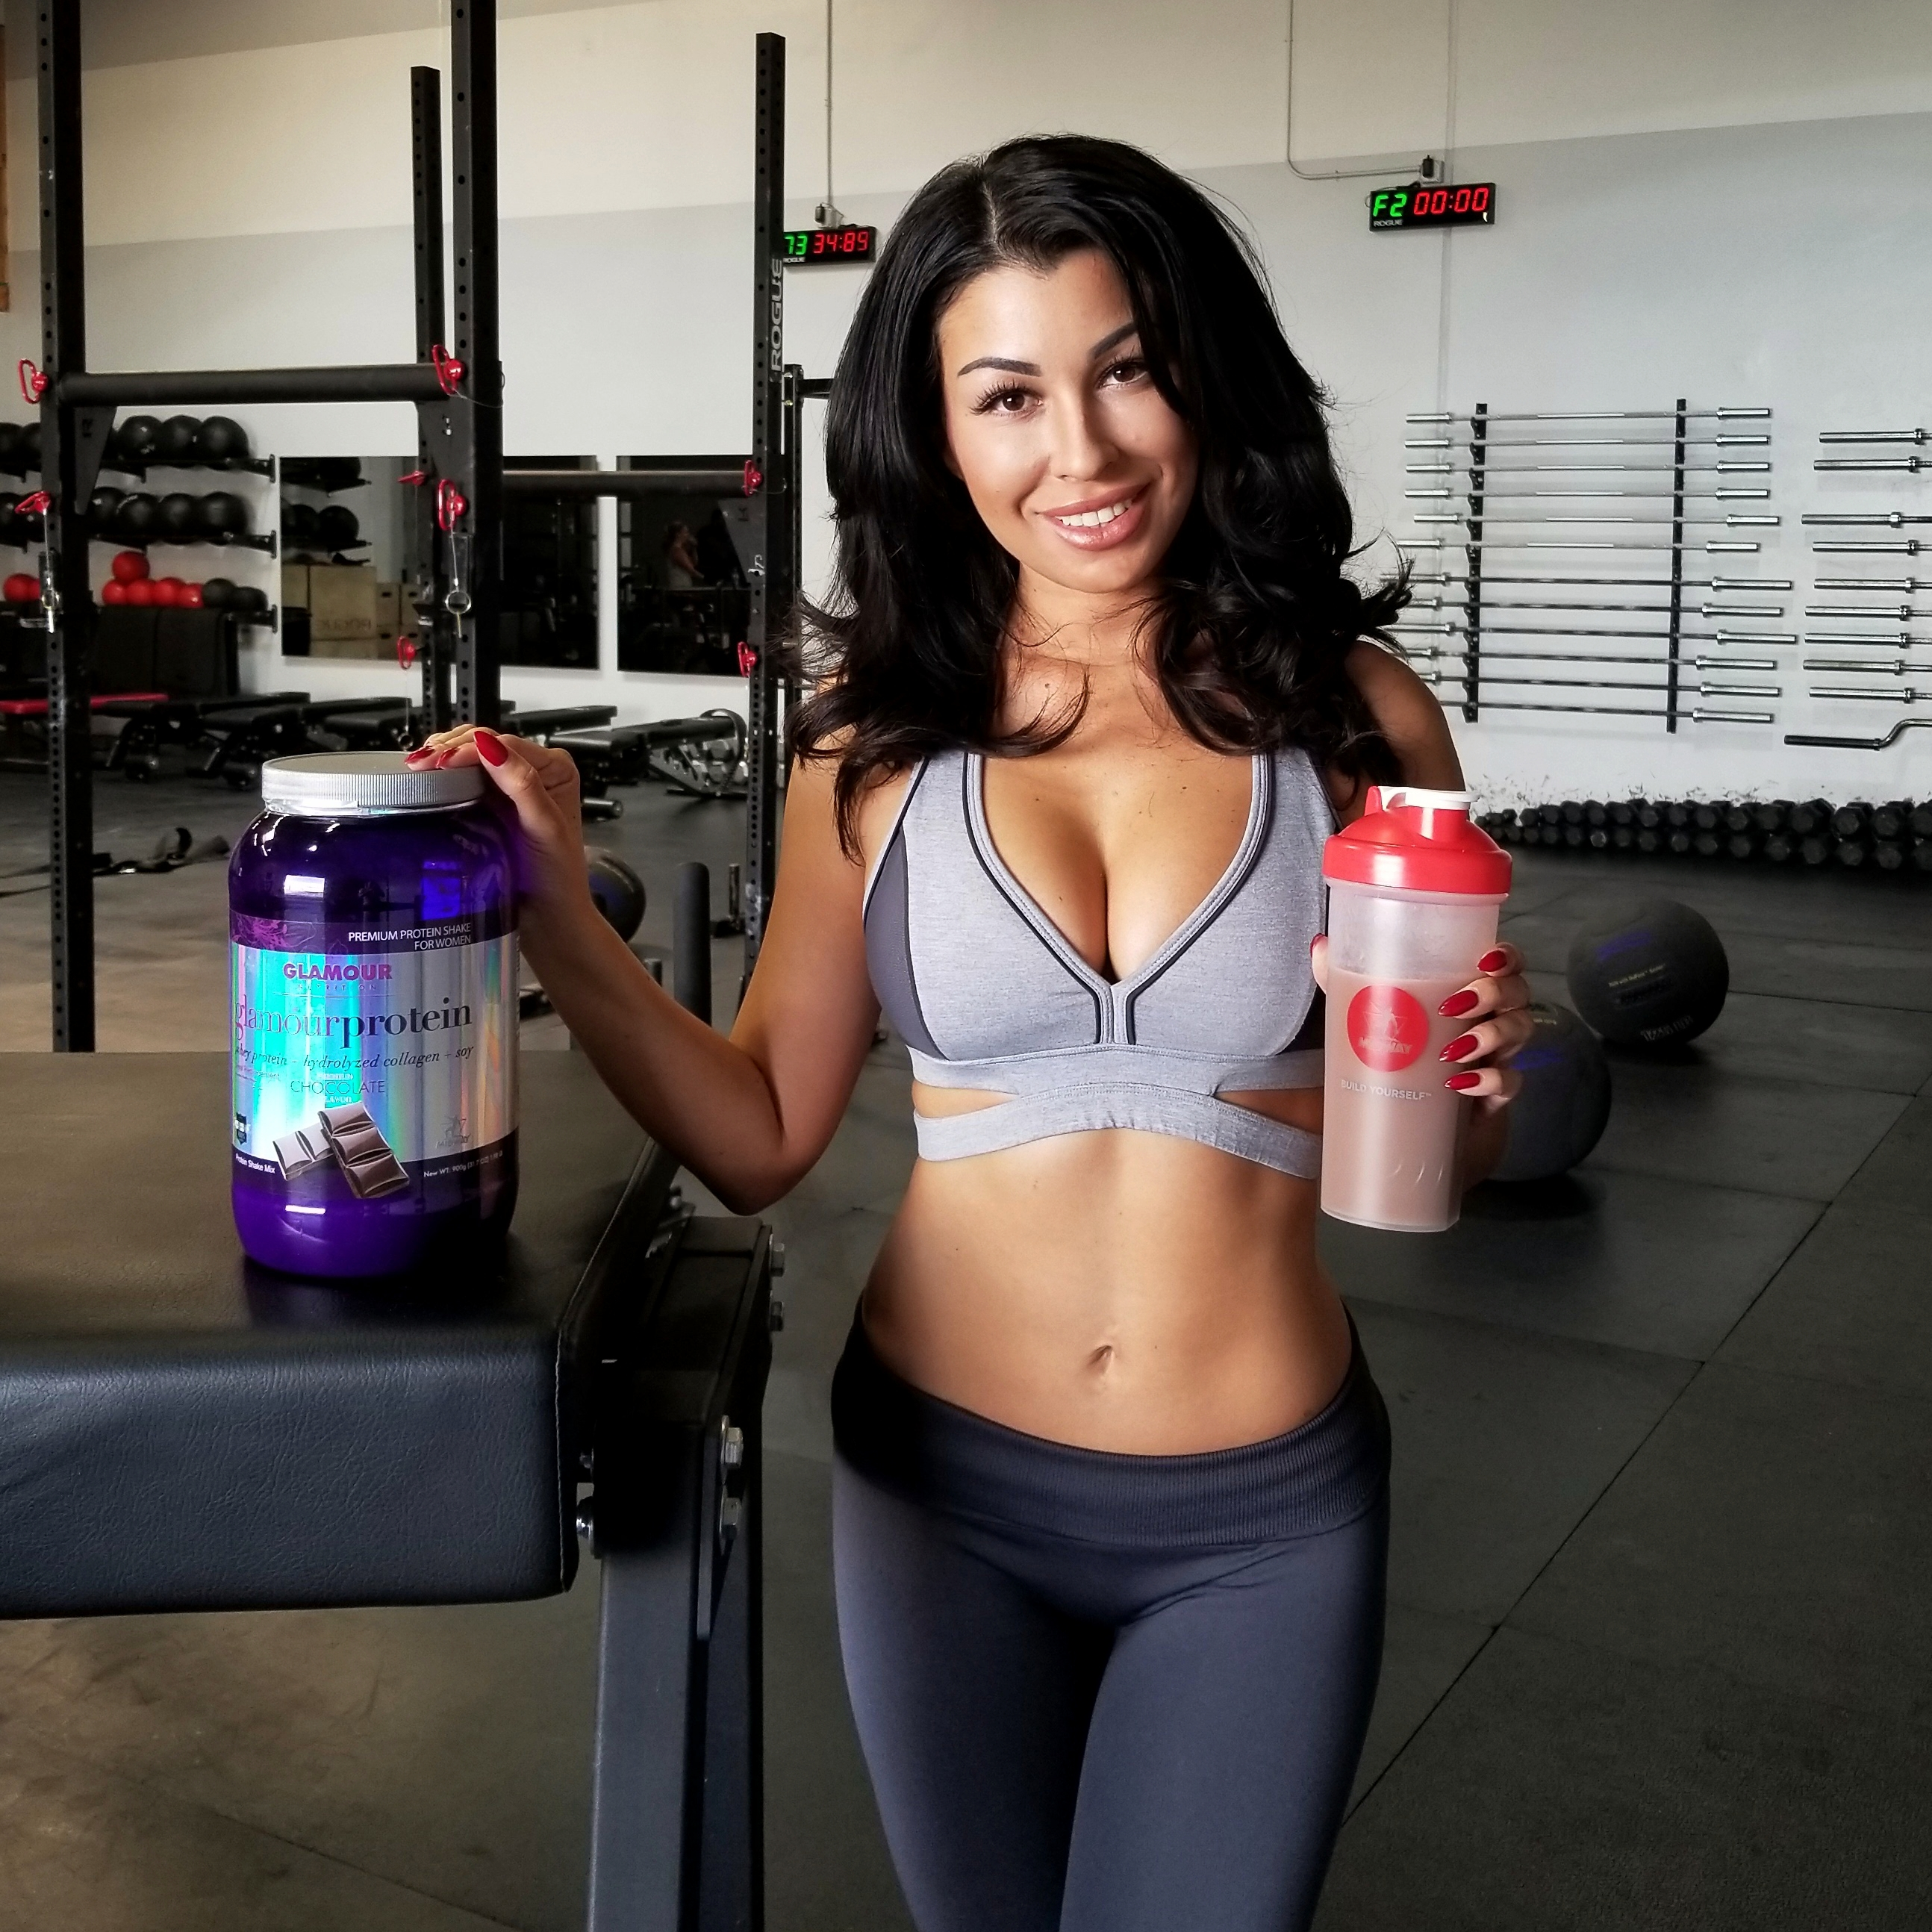 Victoria Elise lovin' her Glamour Protein – Midway Labs USA product line, Glamour Nutrition